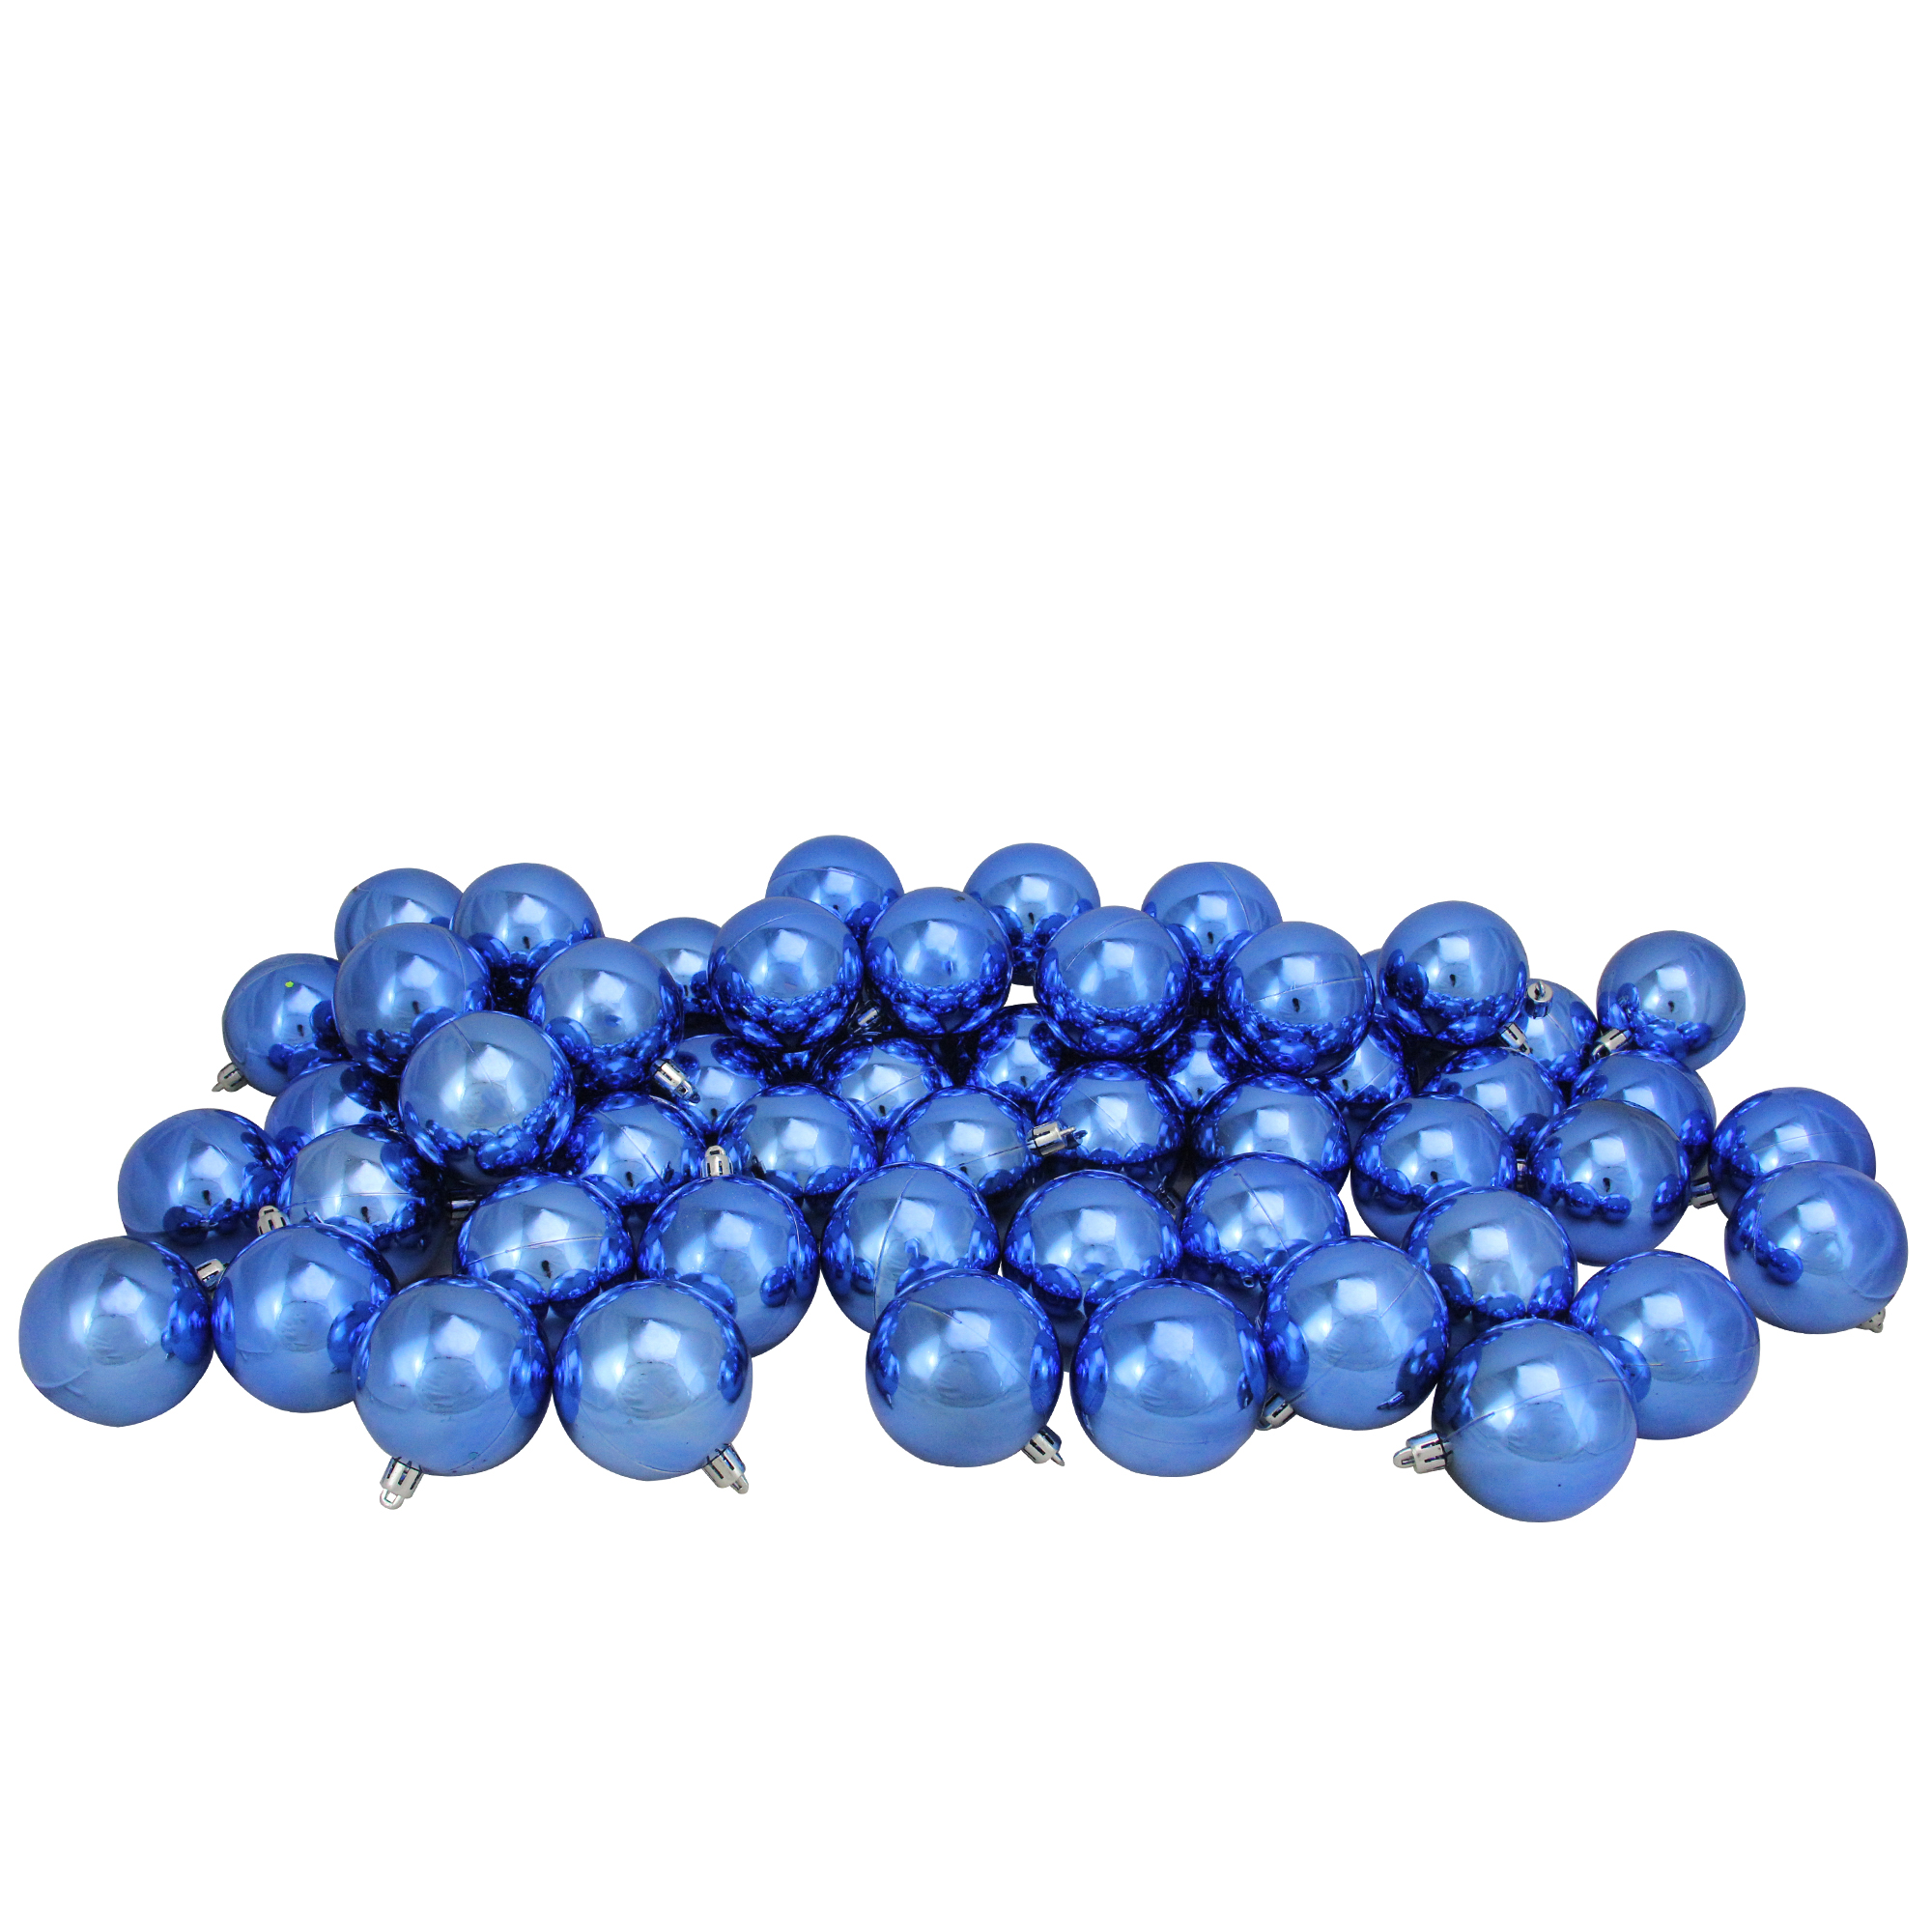 "60ct Lavish Blue Shatterproof Shiny Christmas Ball Ornaments 2.5"" (60mm)"